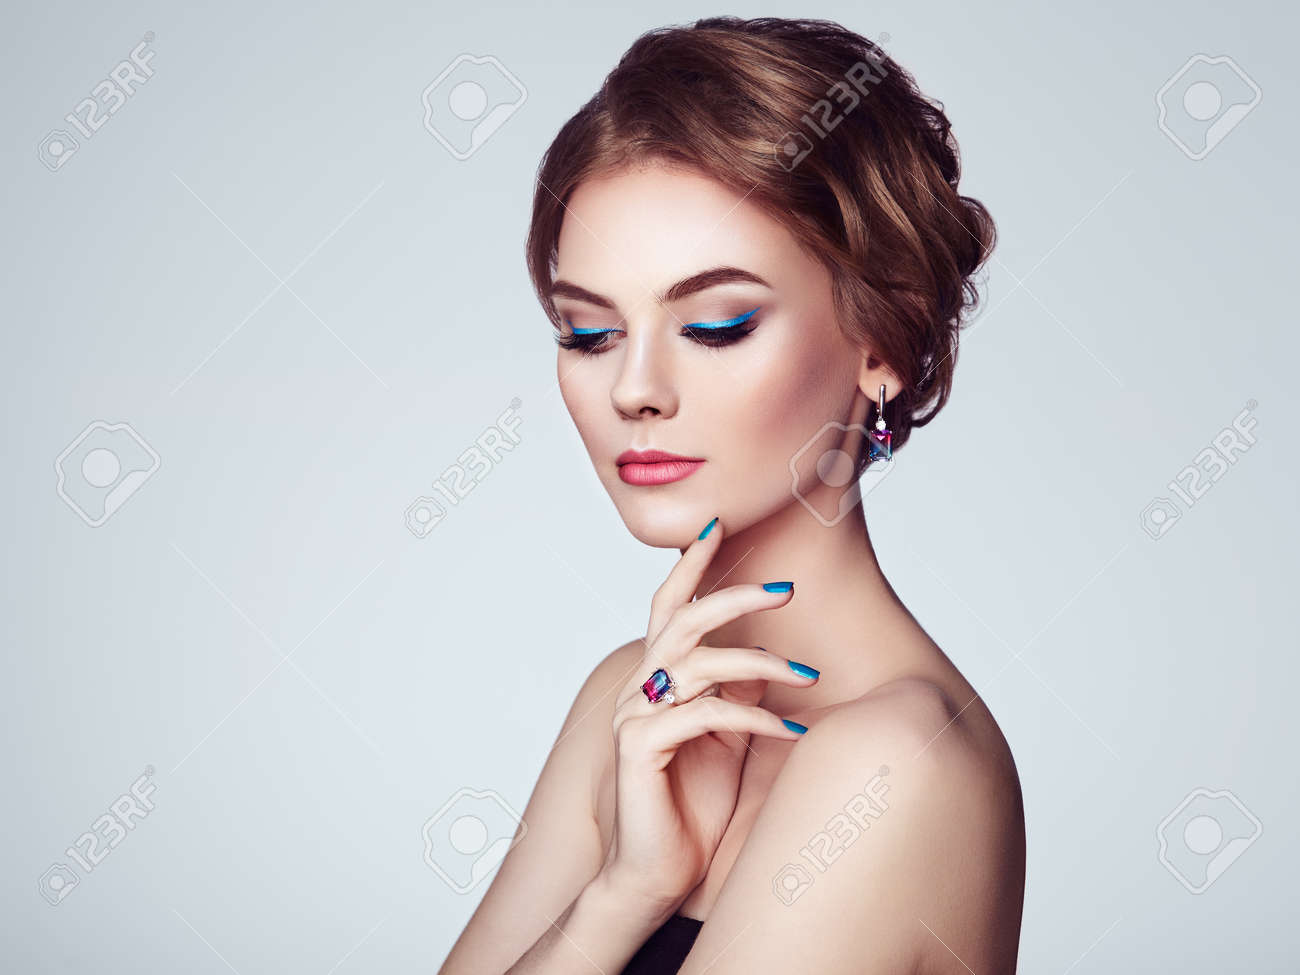 Portrait Beautiful Woman with Jewelry. Model Girl with Blue Manicure on Nails. Elegant Hairstyle. Blue Make-up Arrows. Beauty and Accessories - 110542234